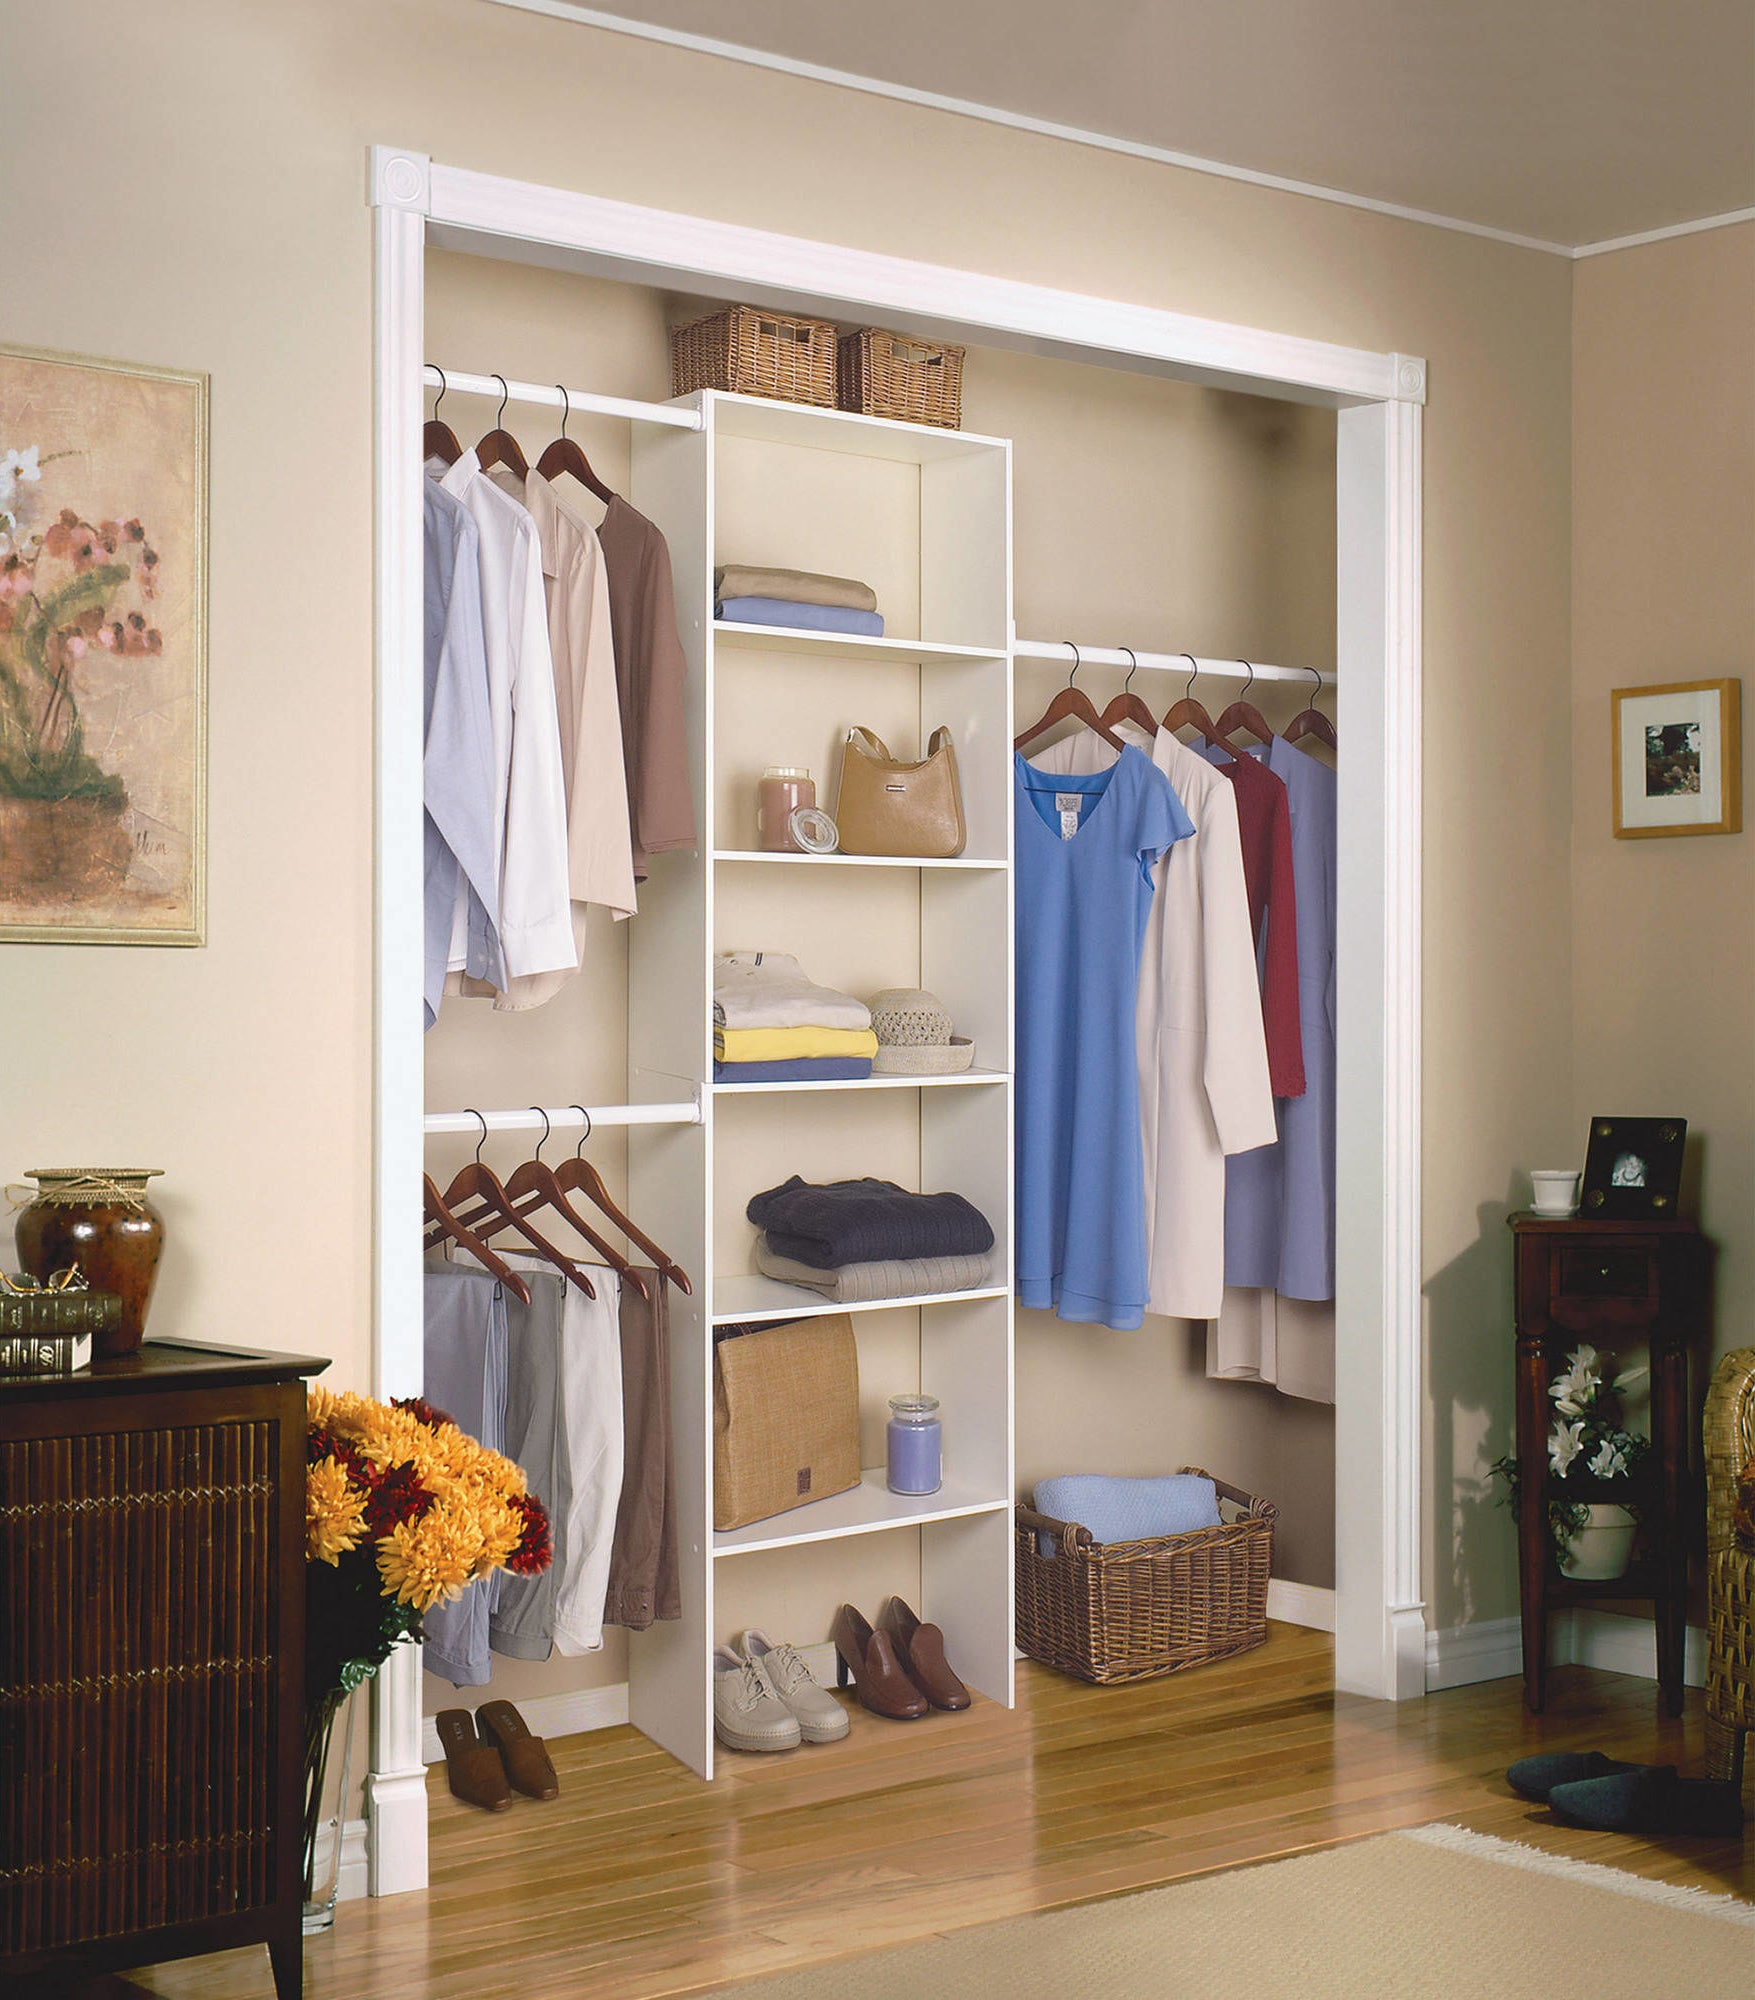 The tall white organizer, with six shelves and three rods, in a closet